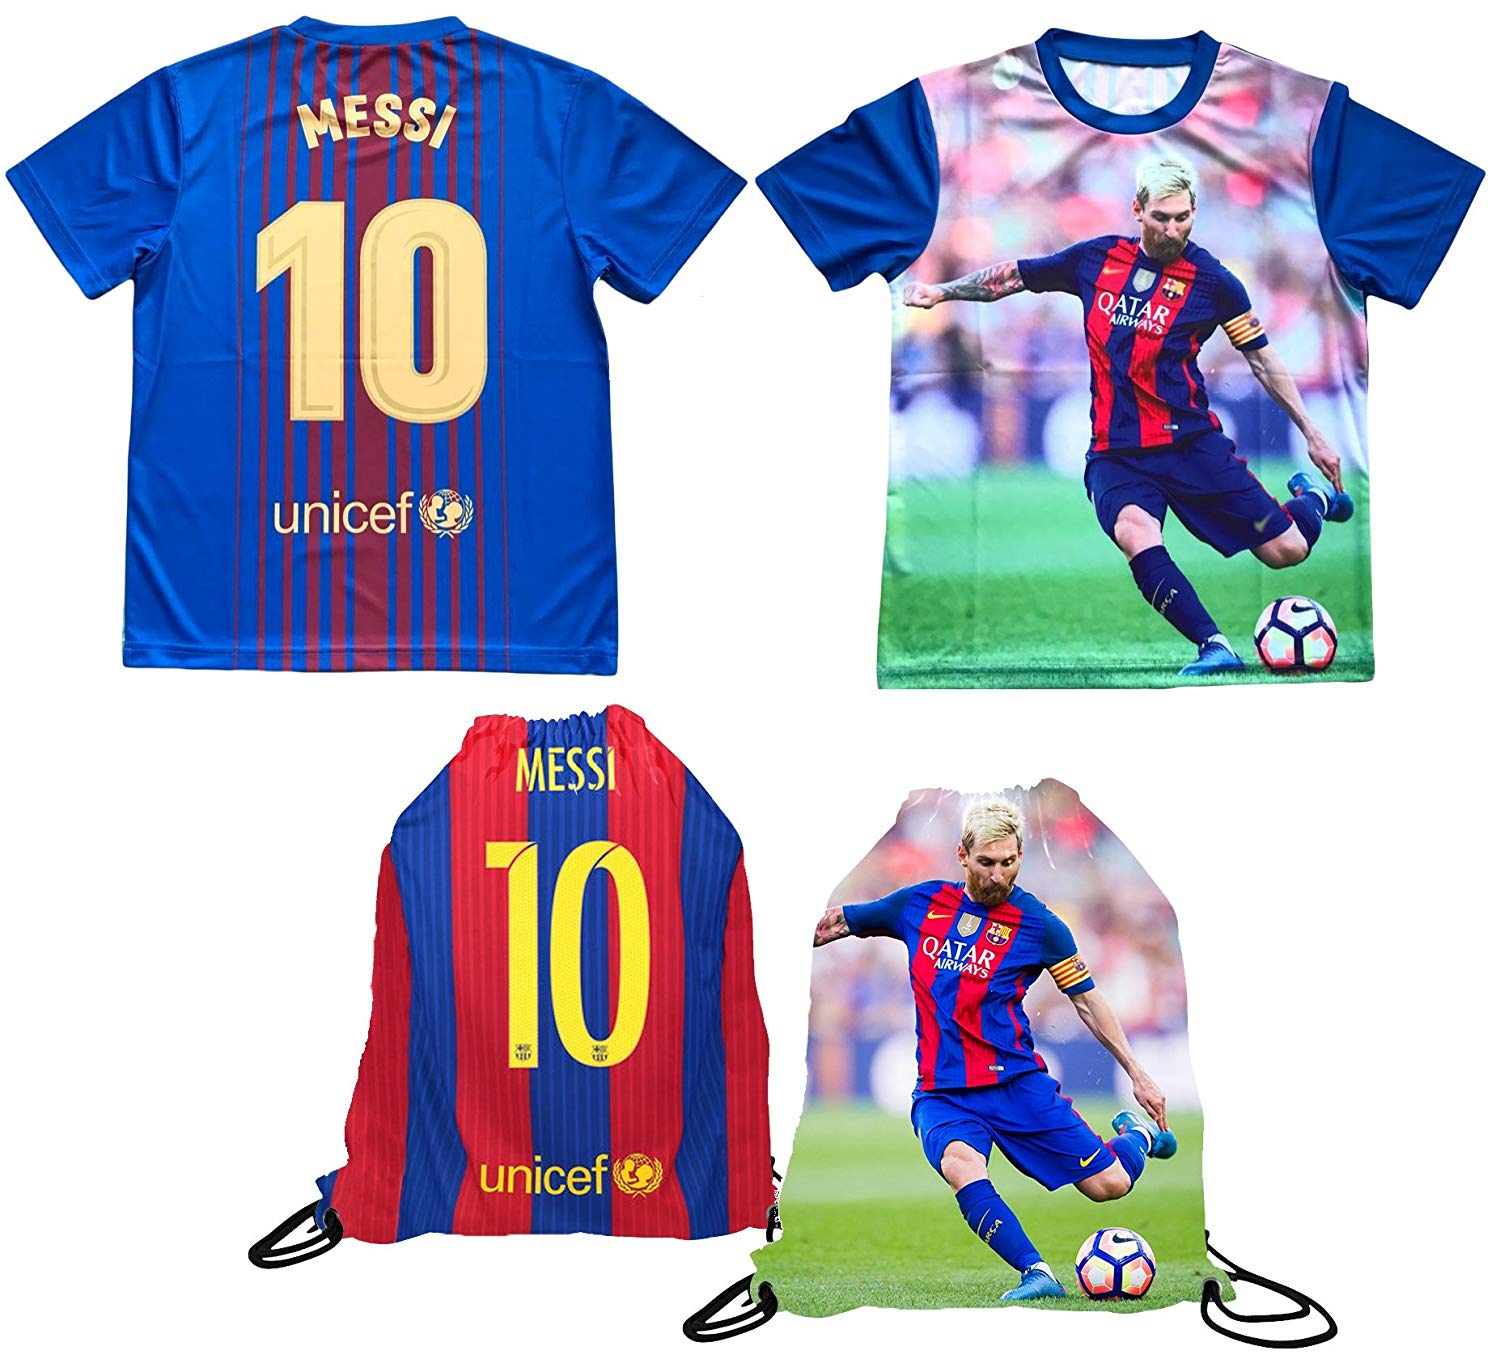 low priced a78dd eaf1c Cheap Messi Shirt Youth, find Messi Shirt Youth deals on ...